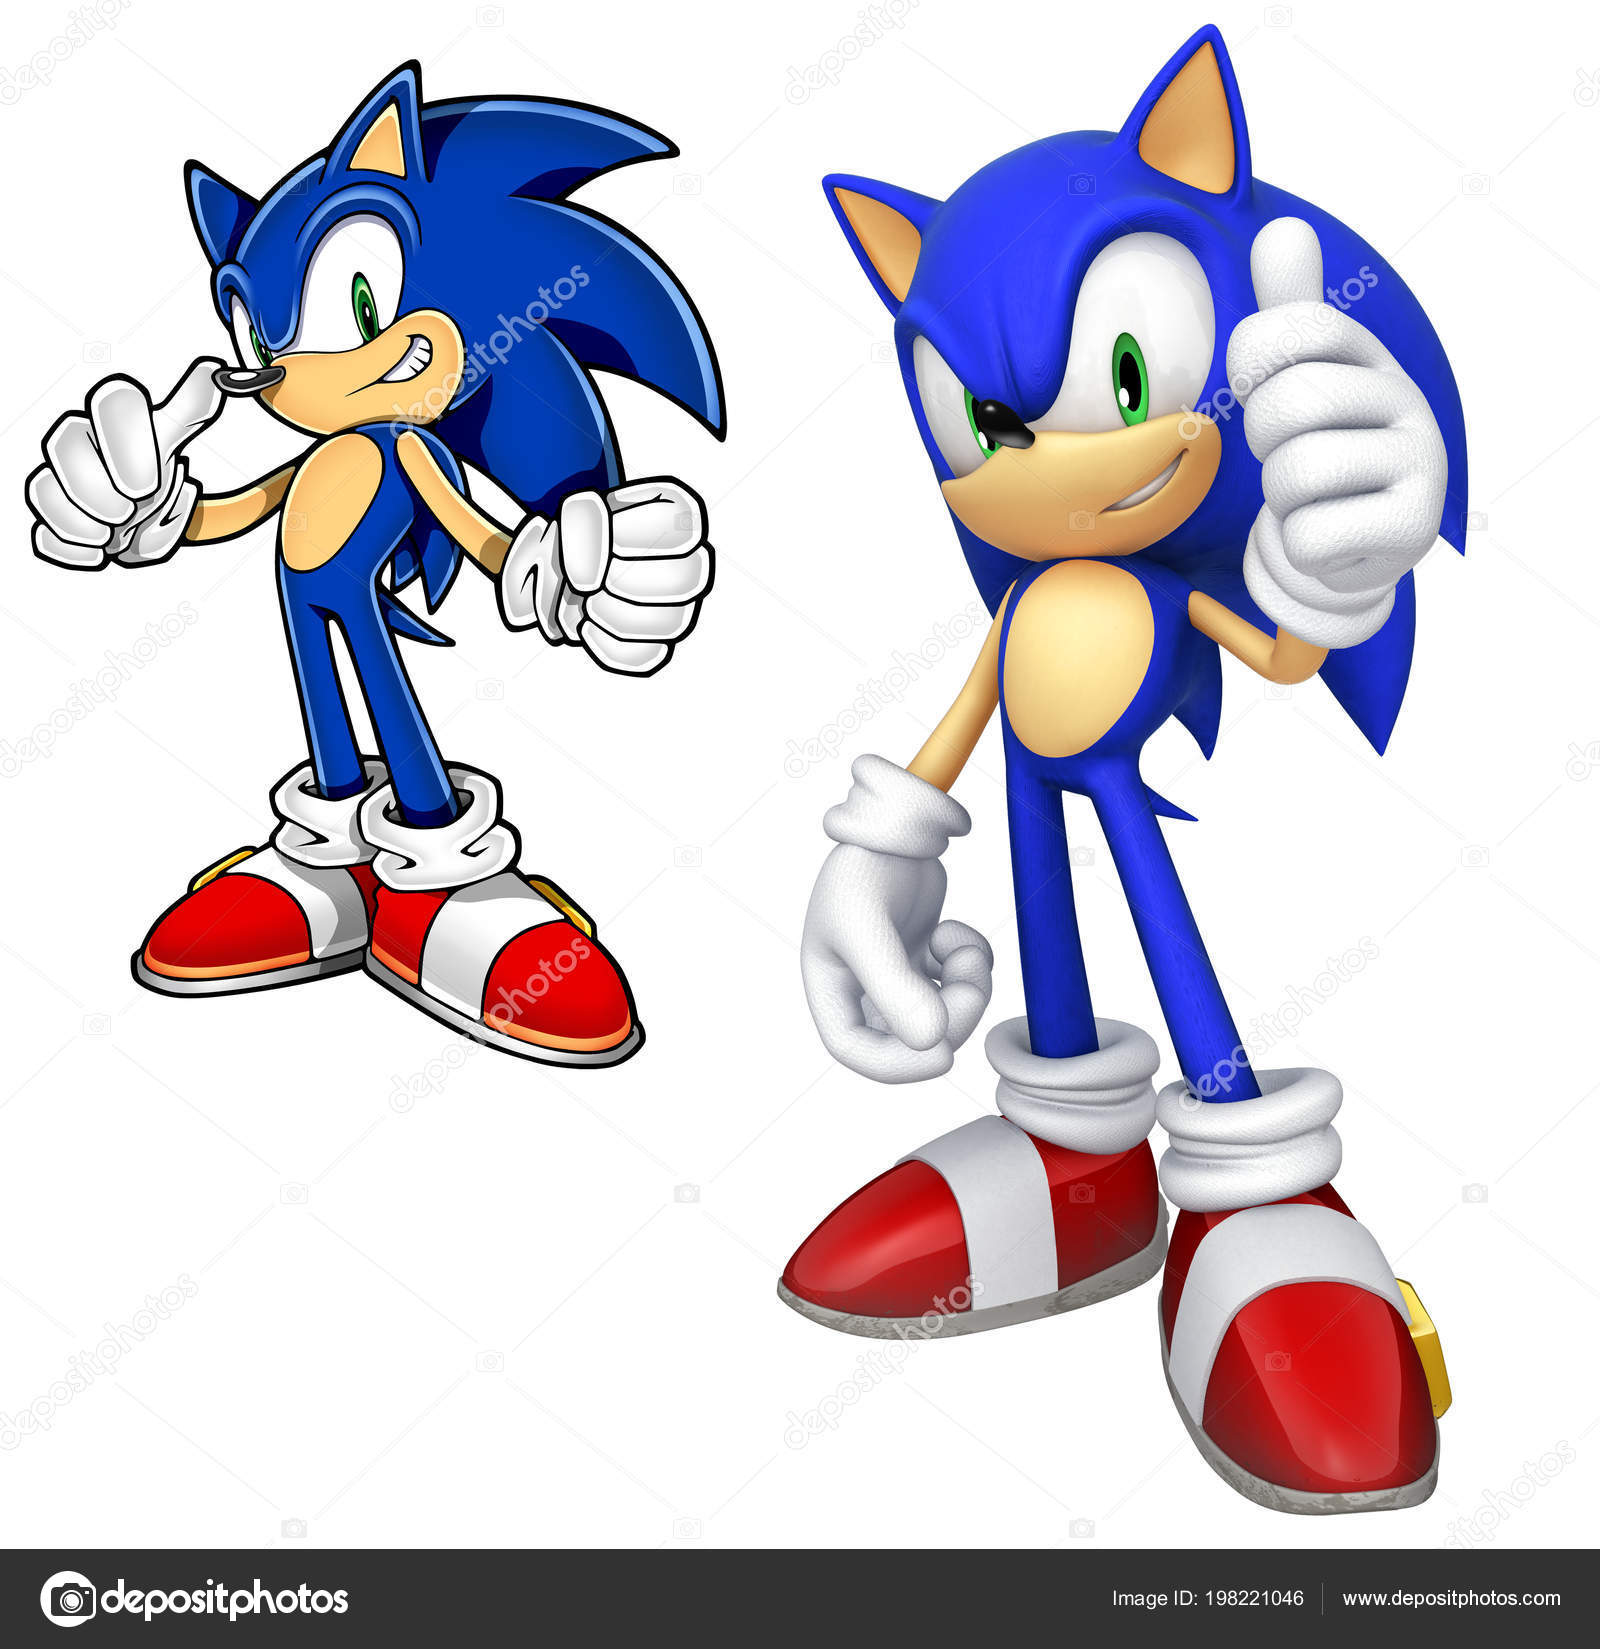 Sonic Hedgehog Illustration Blue Color Video Game Character Stock Editorial Photo C Chutimakuanamon 198221046